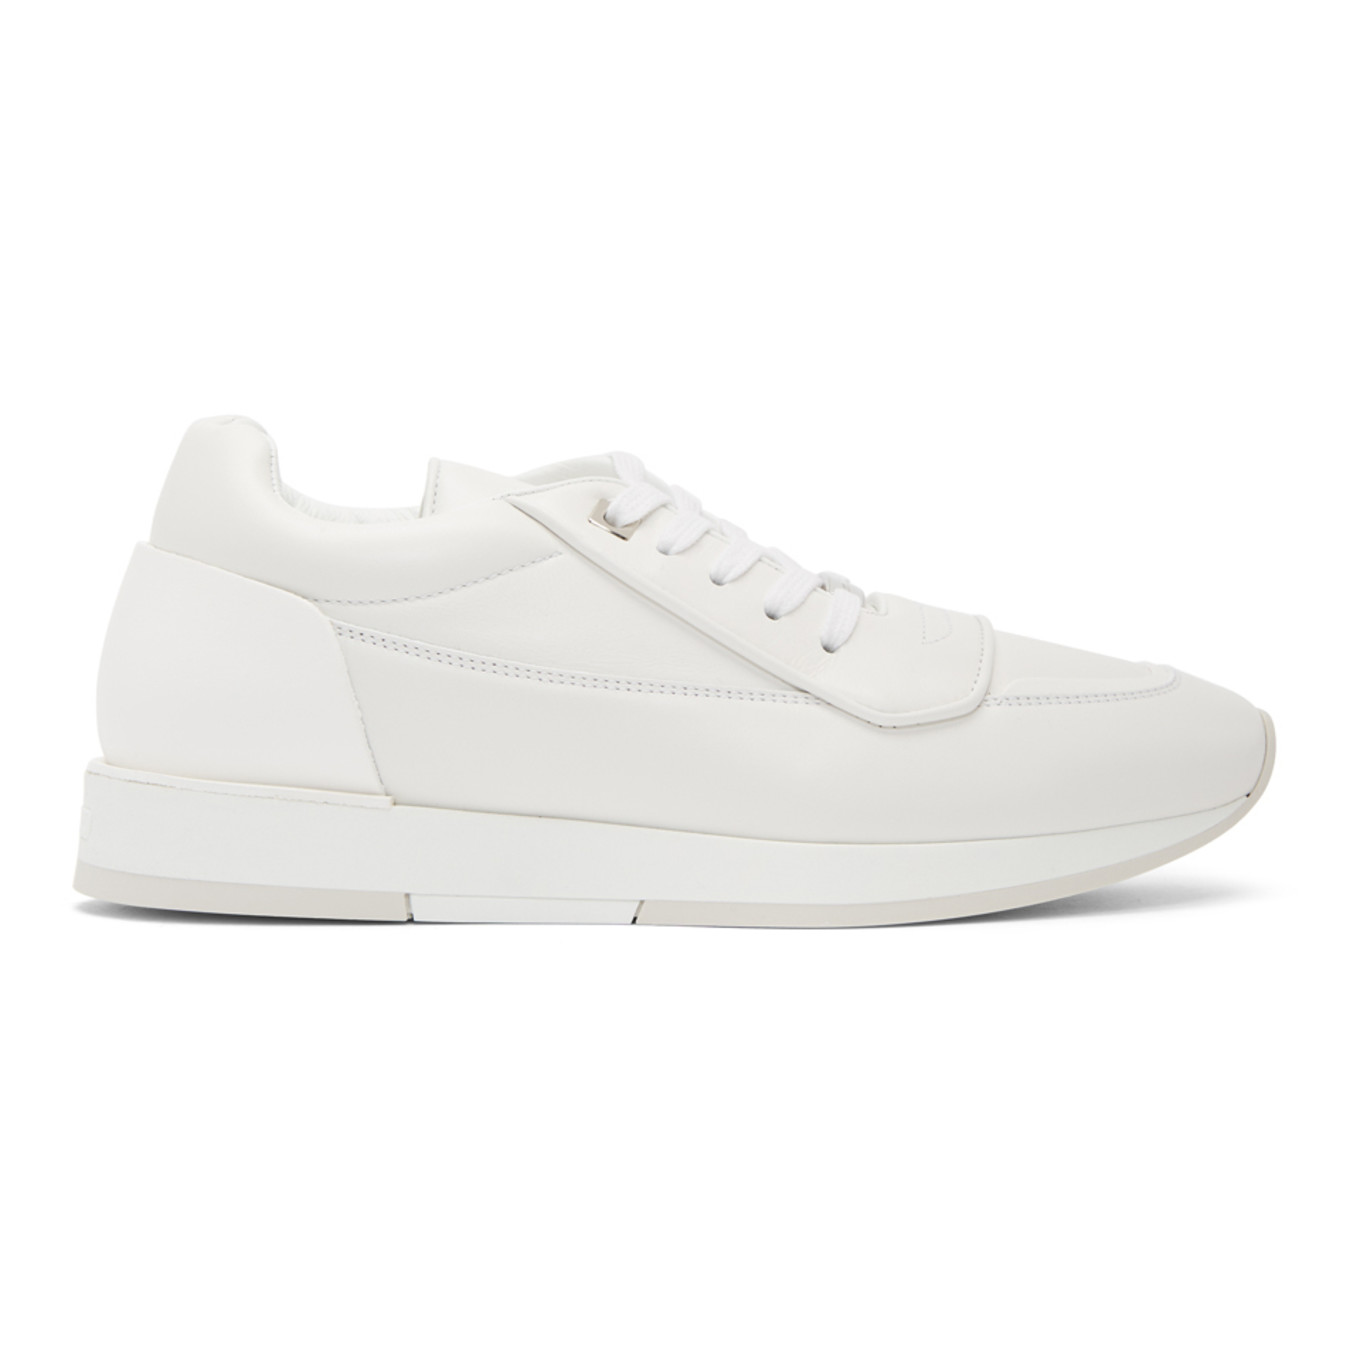 White Leather Jett Sneakers by Jimmy Choo